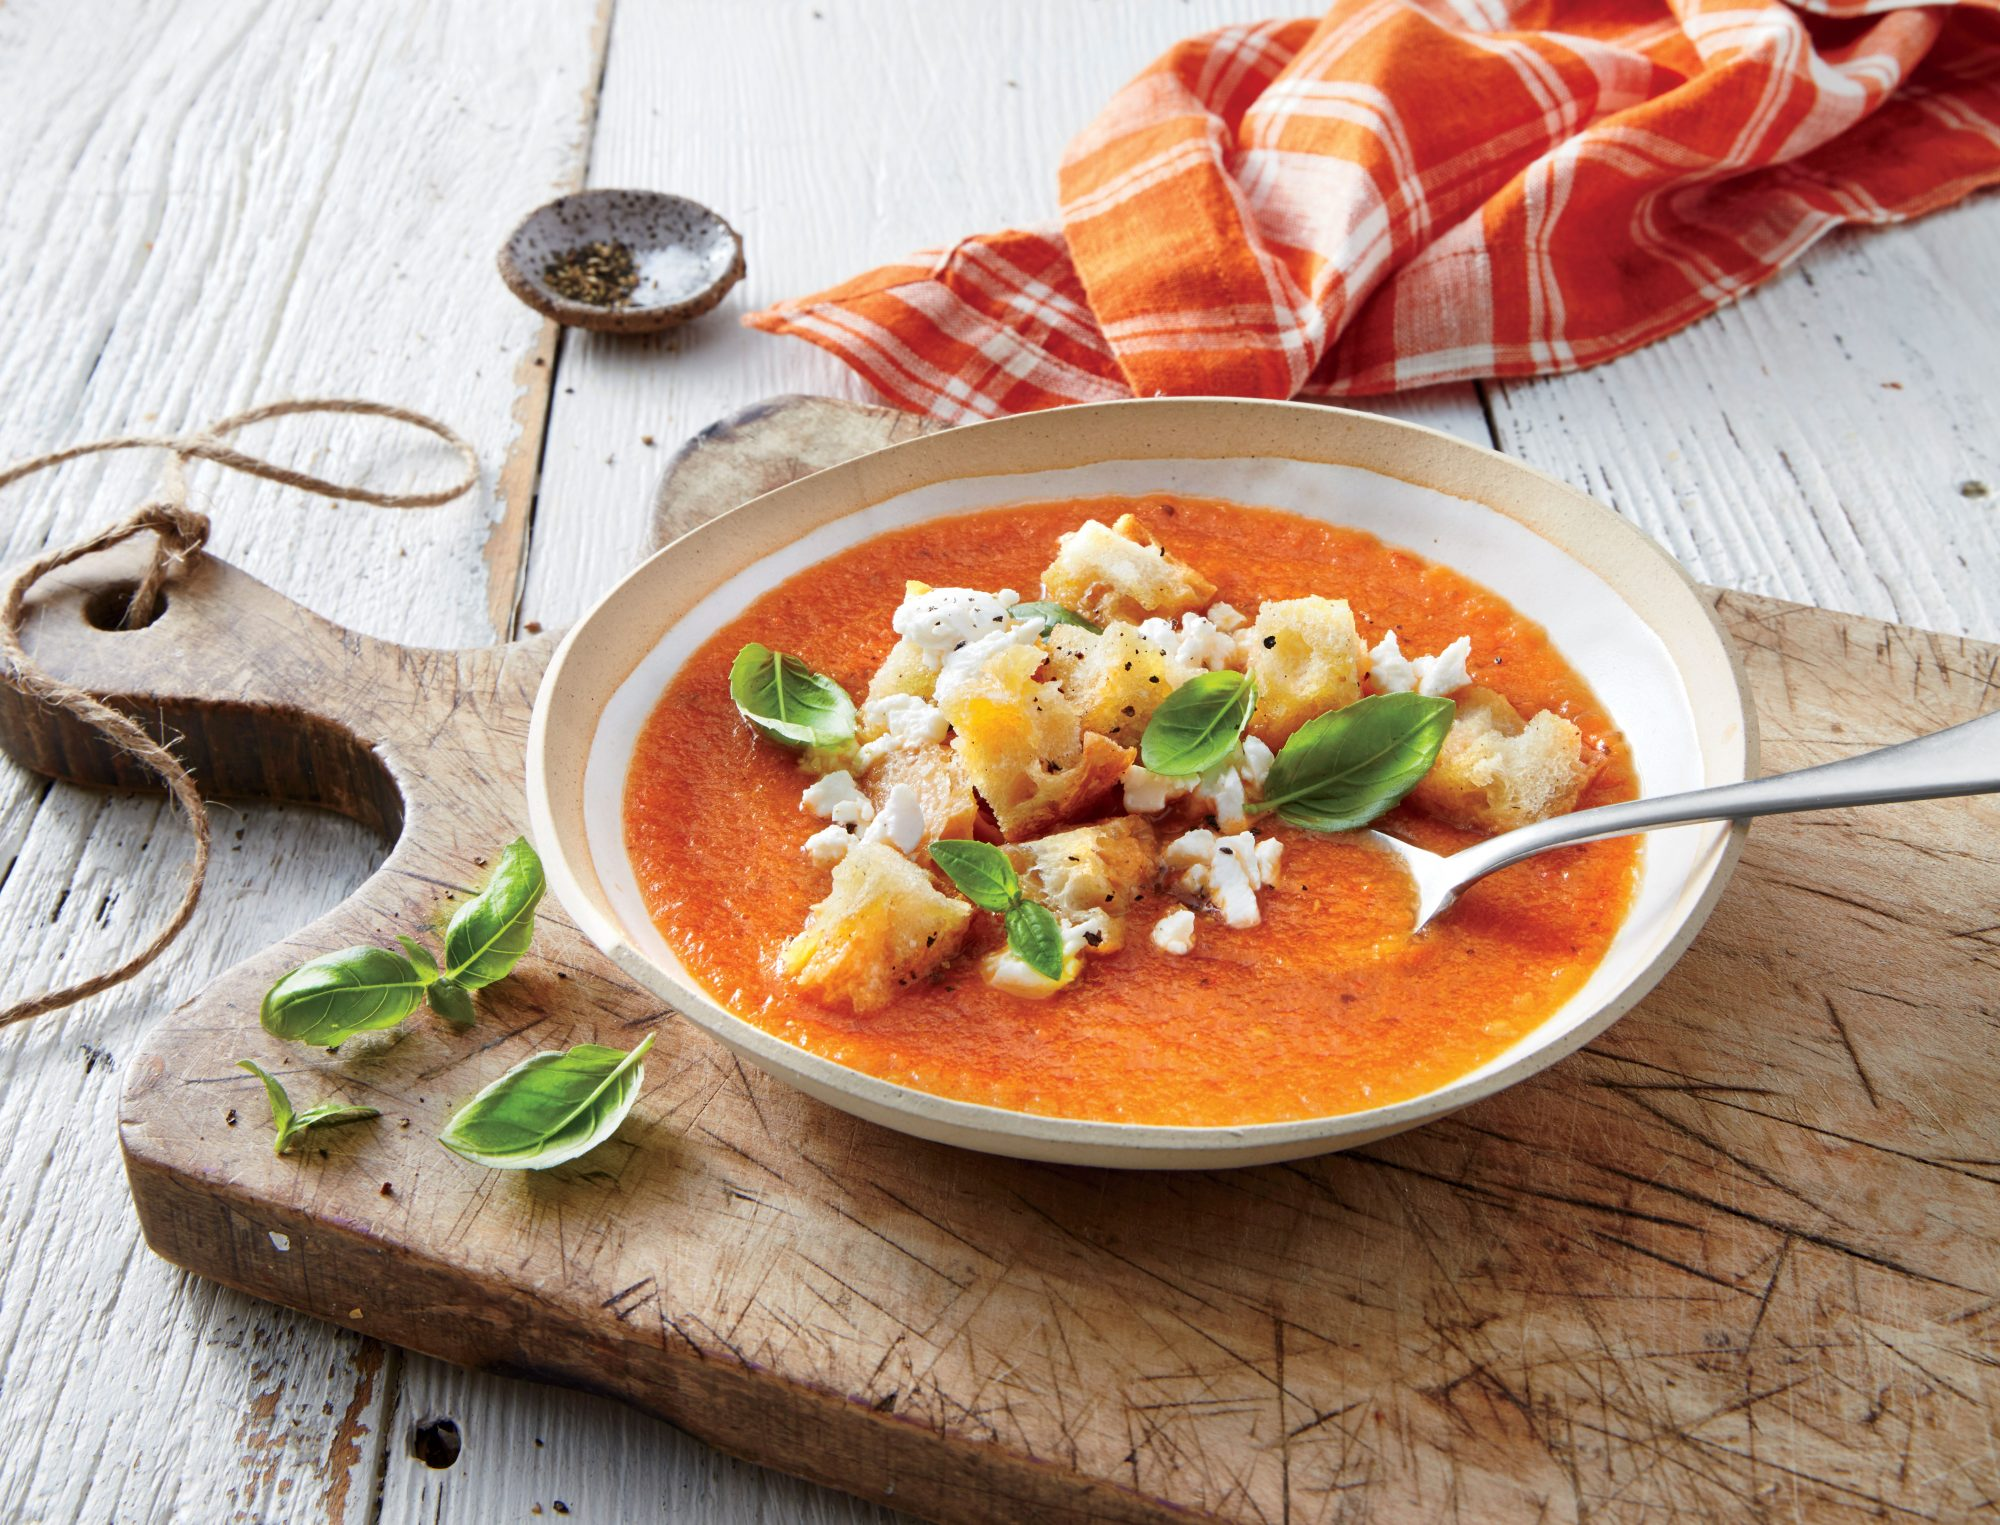 Roasted Tomato-Eggplant Soup with Garlic Croutons